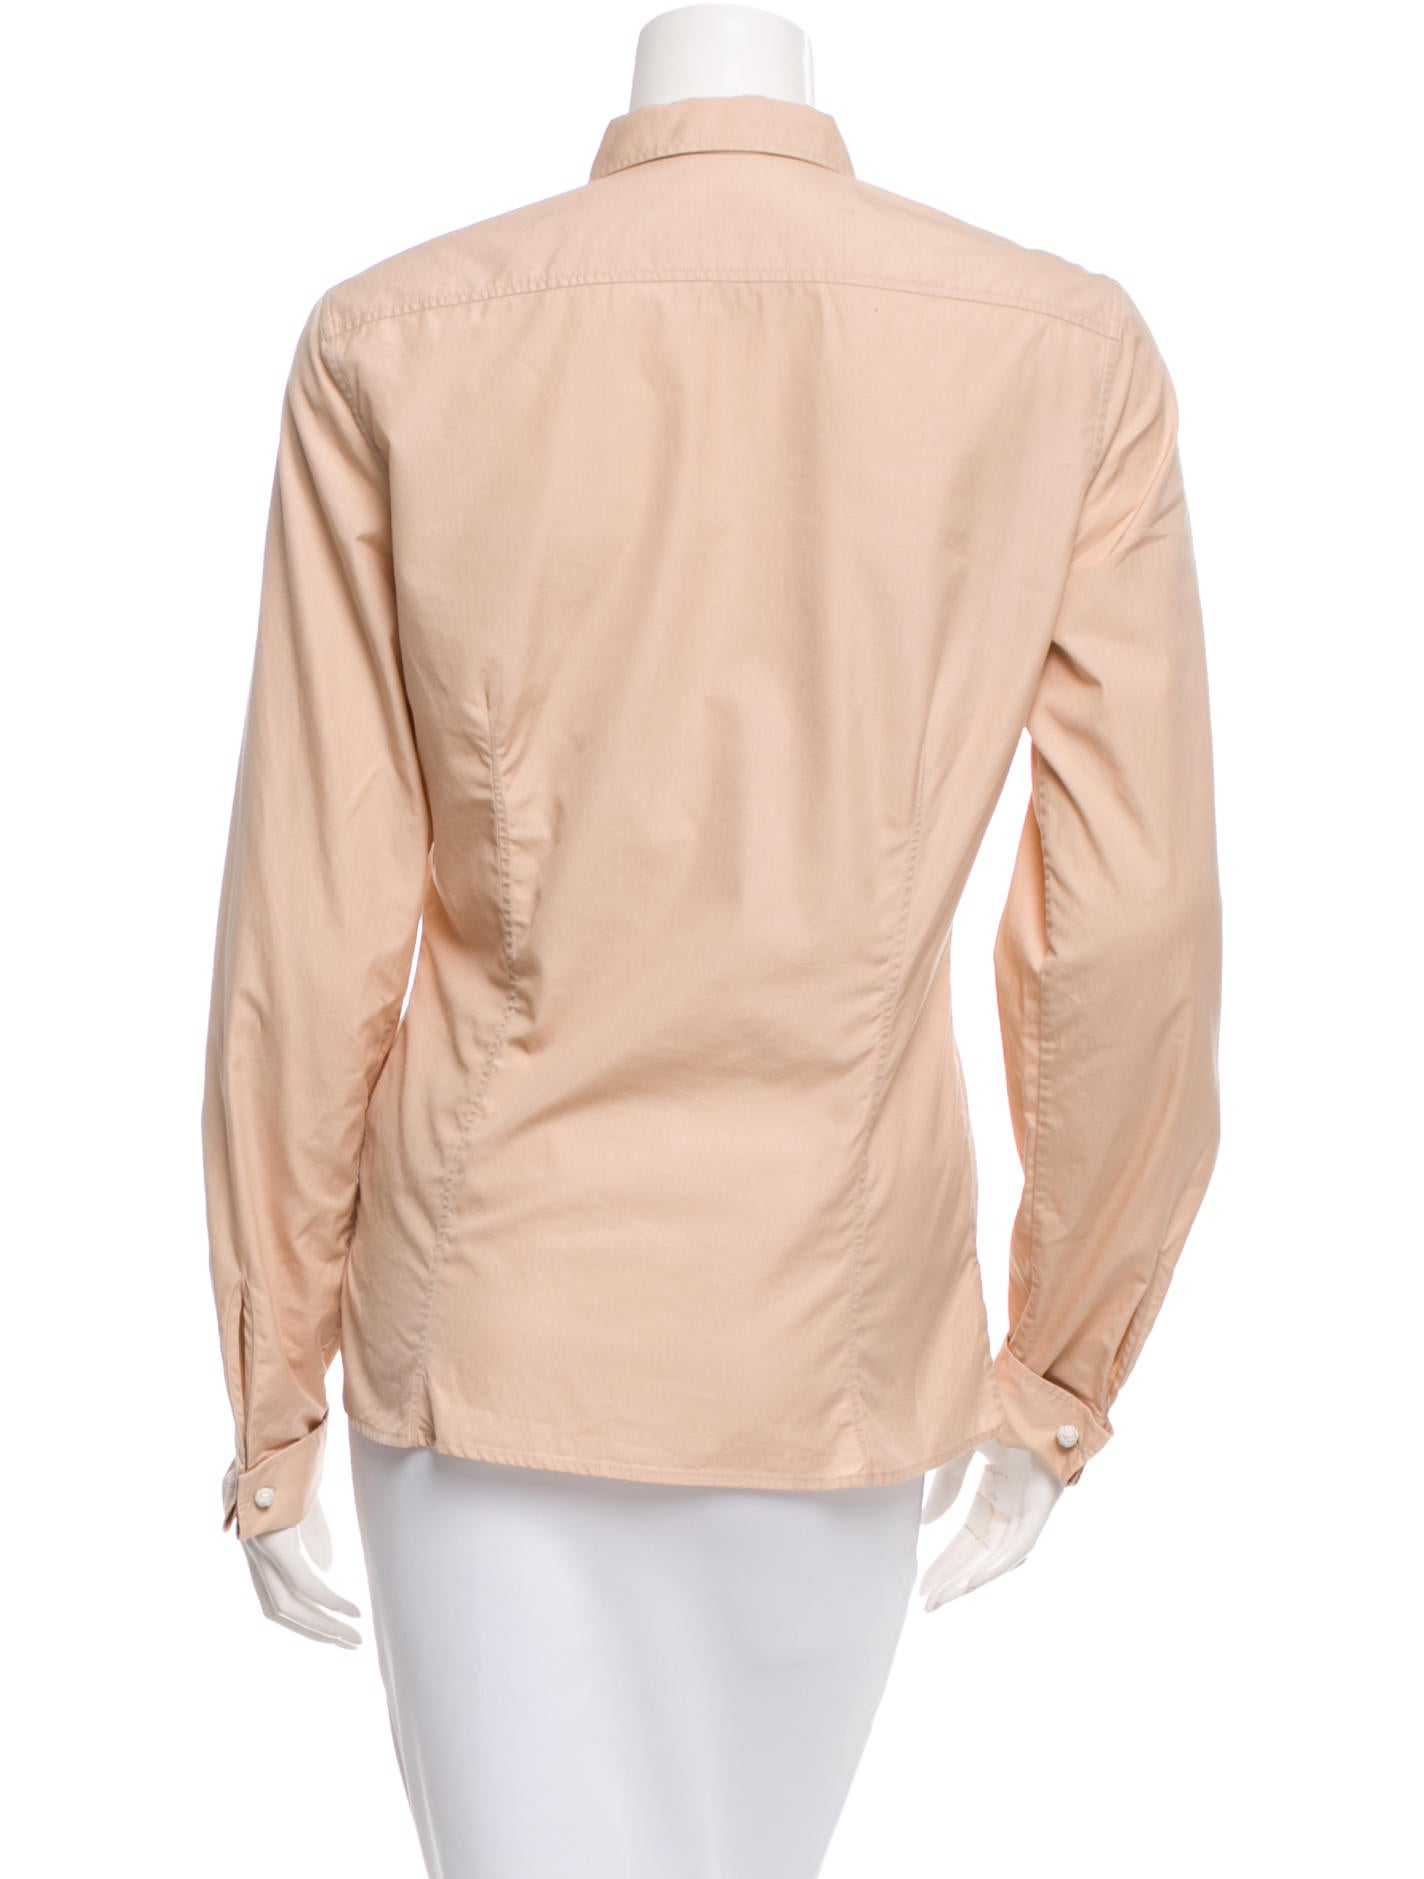 Herm S Fitted Button Up Top Clothing Her61824 The